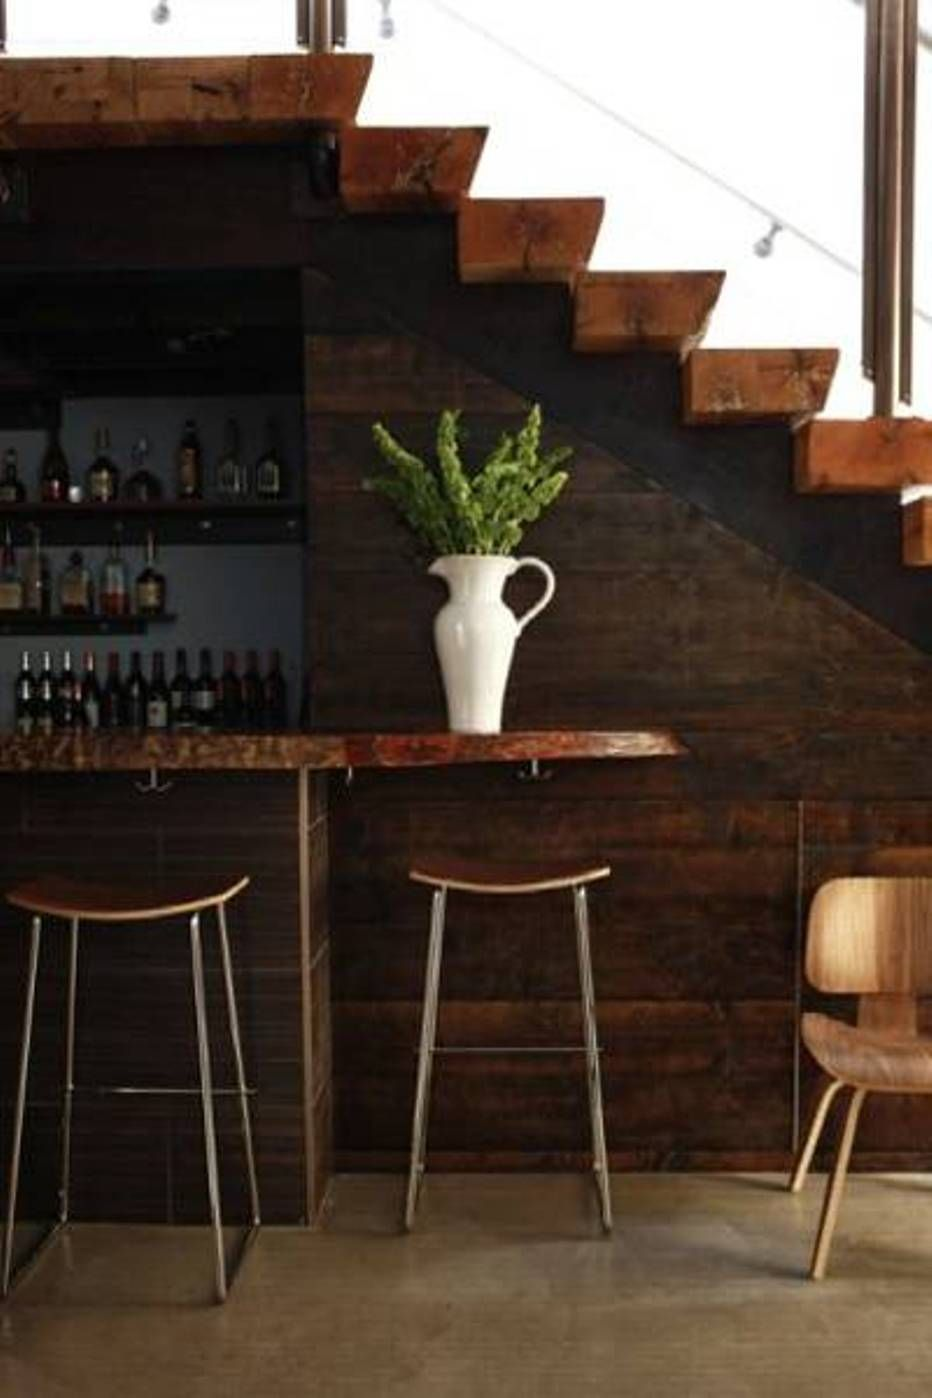 Home Design And Decor Under Stair Design With Mini Bar Rustic | Home Mini Bar Design Under Staircase | Wine Cellar | Living Room | Basement Stairs | Basement Bar | Interior Design Ideas